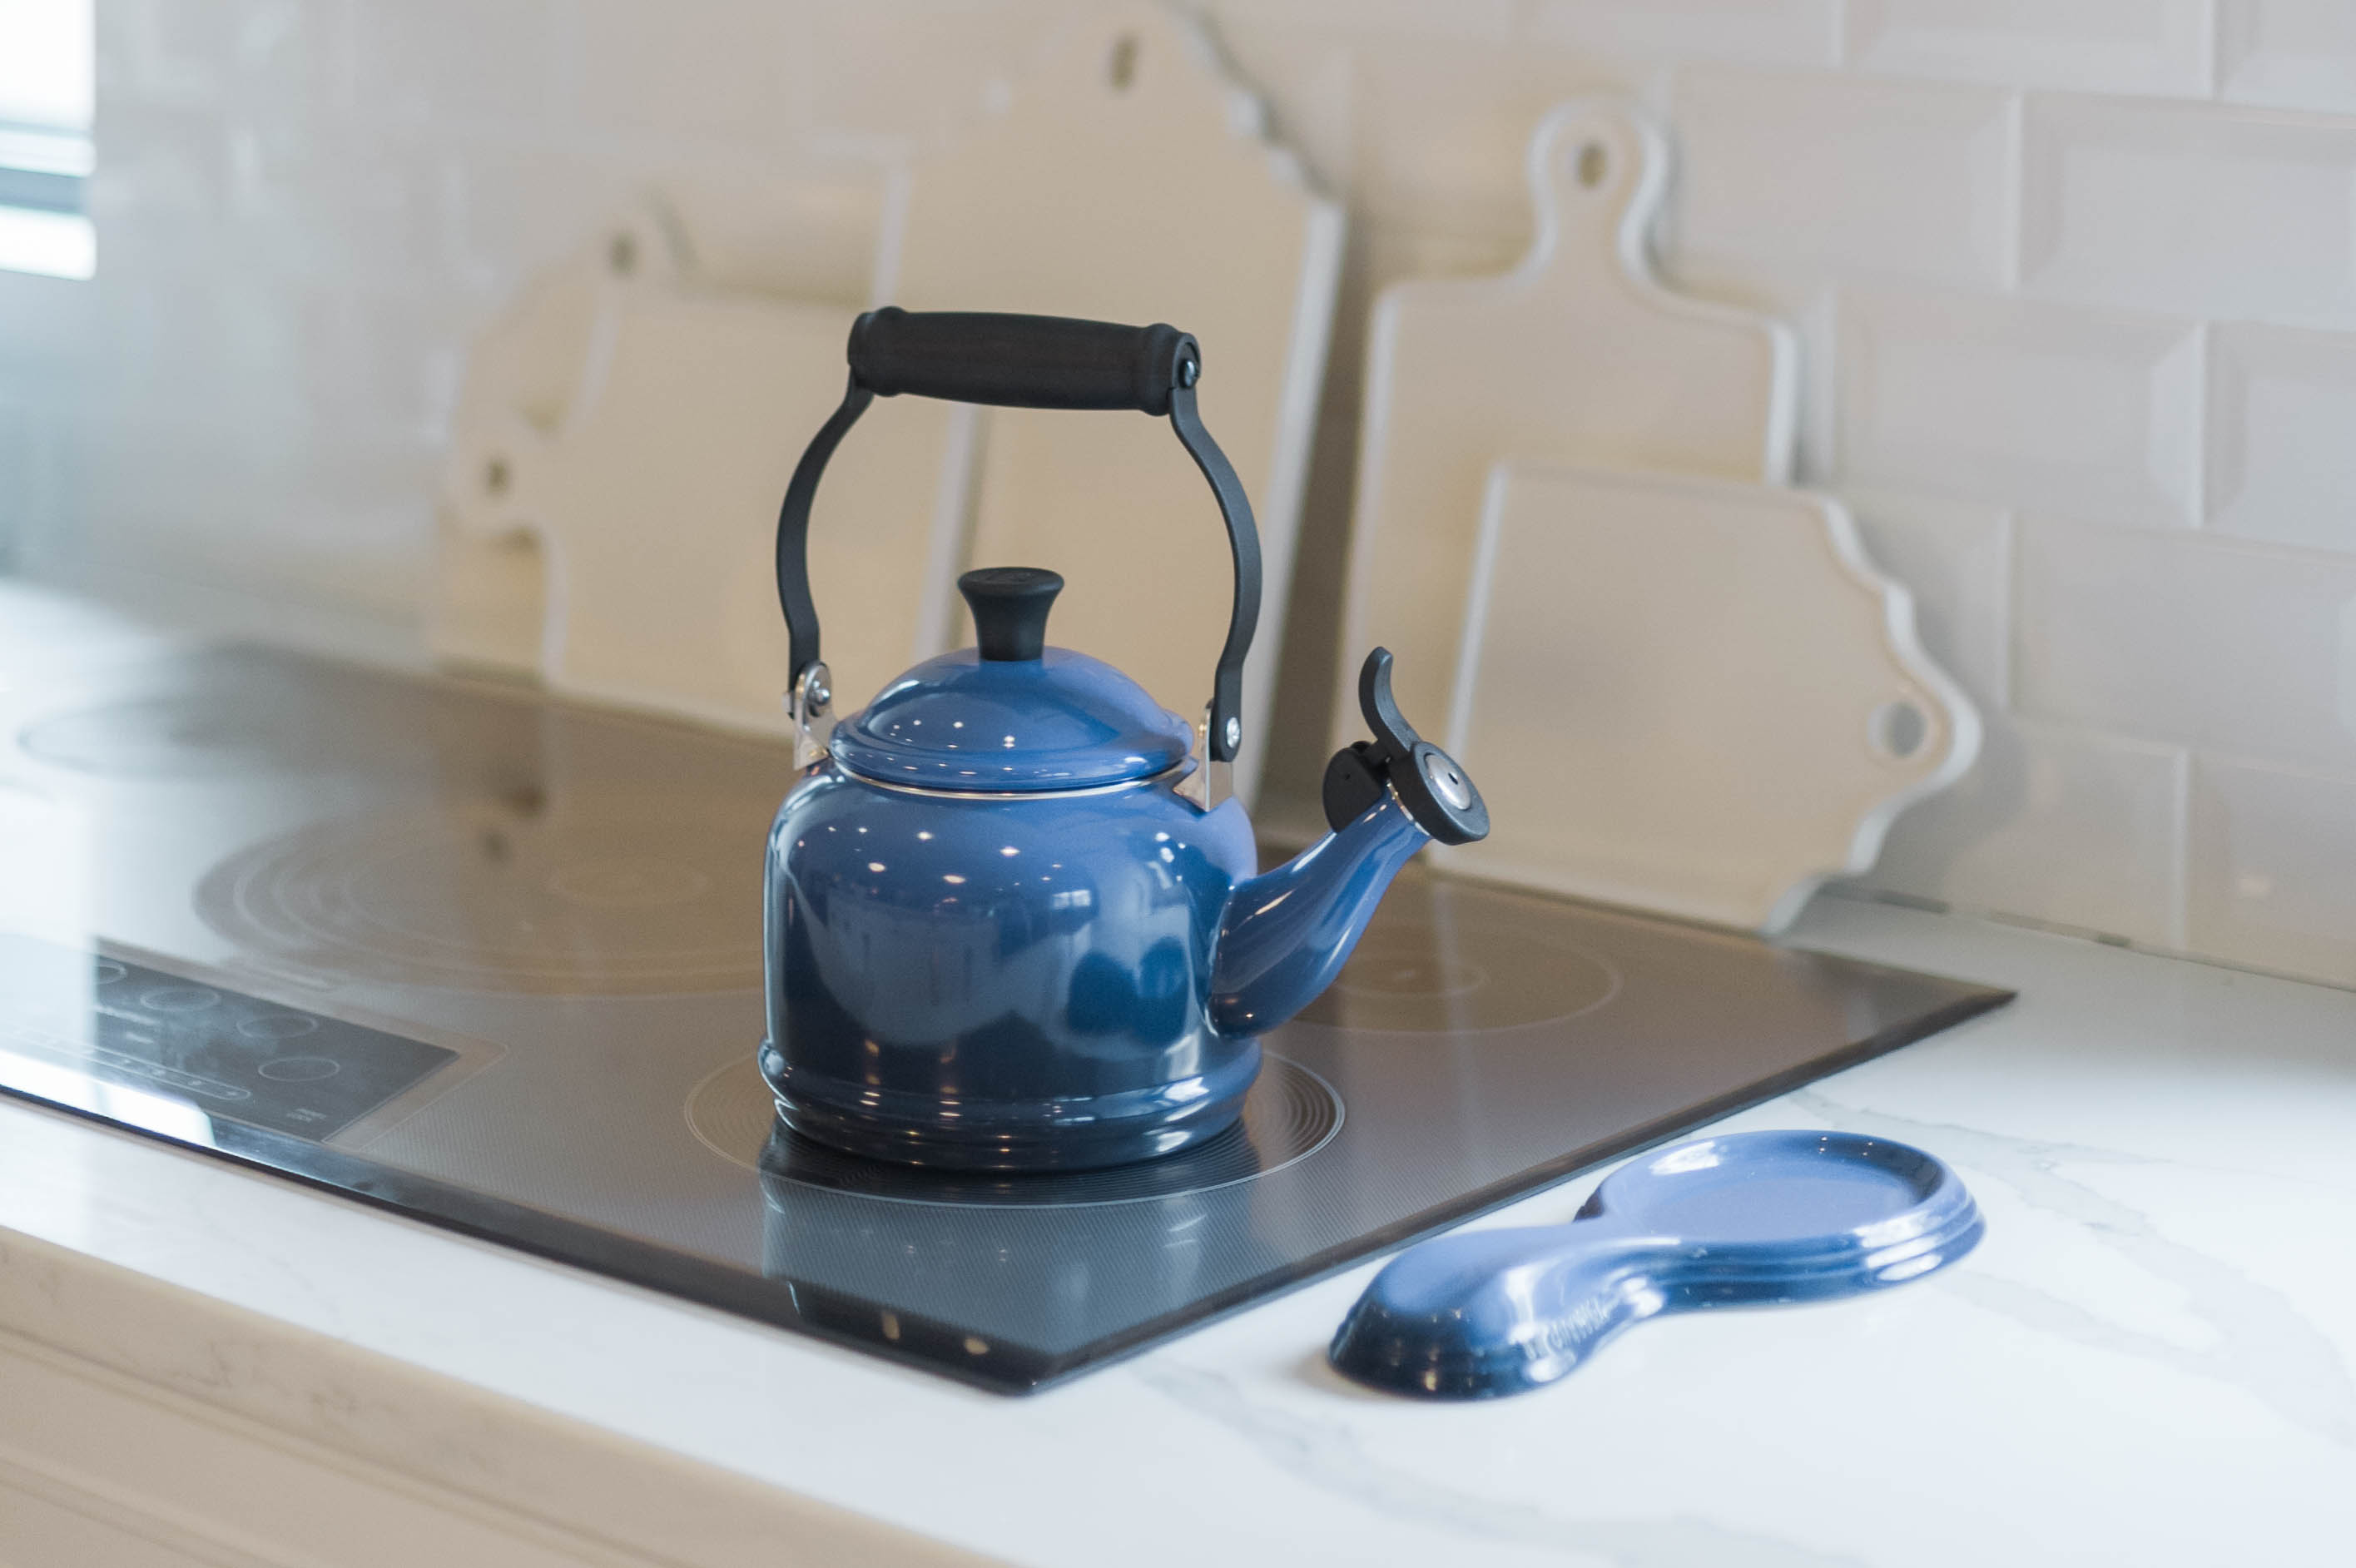 lecreuset_kettle_spoon_rest_thermador_induction_cooktop